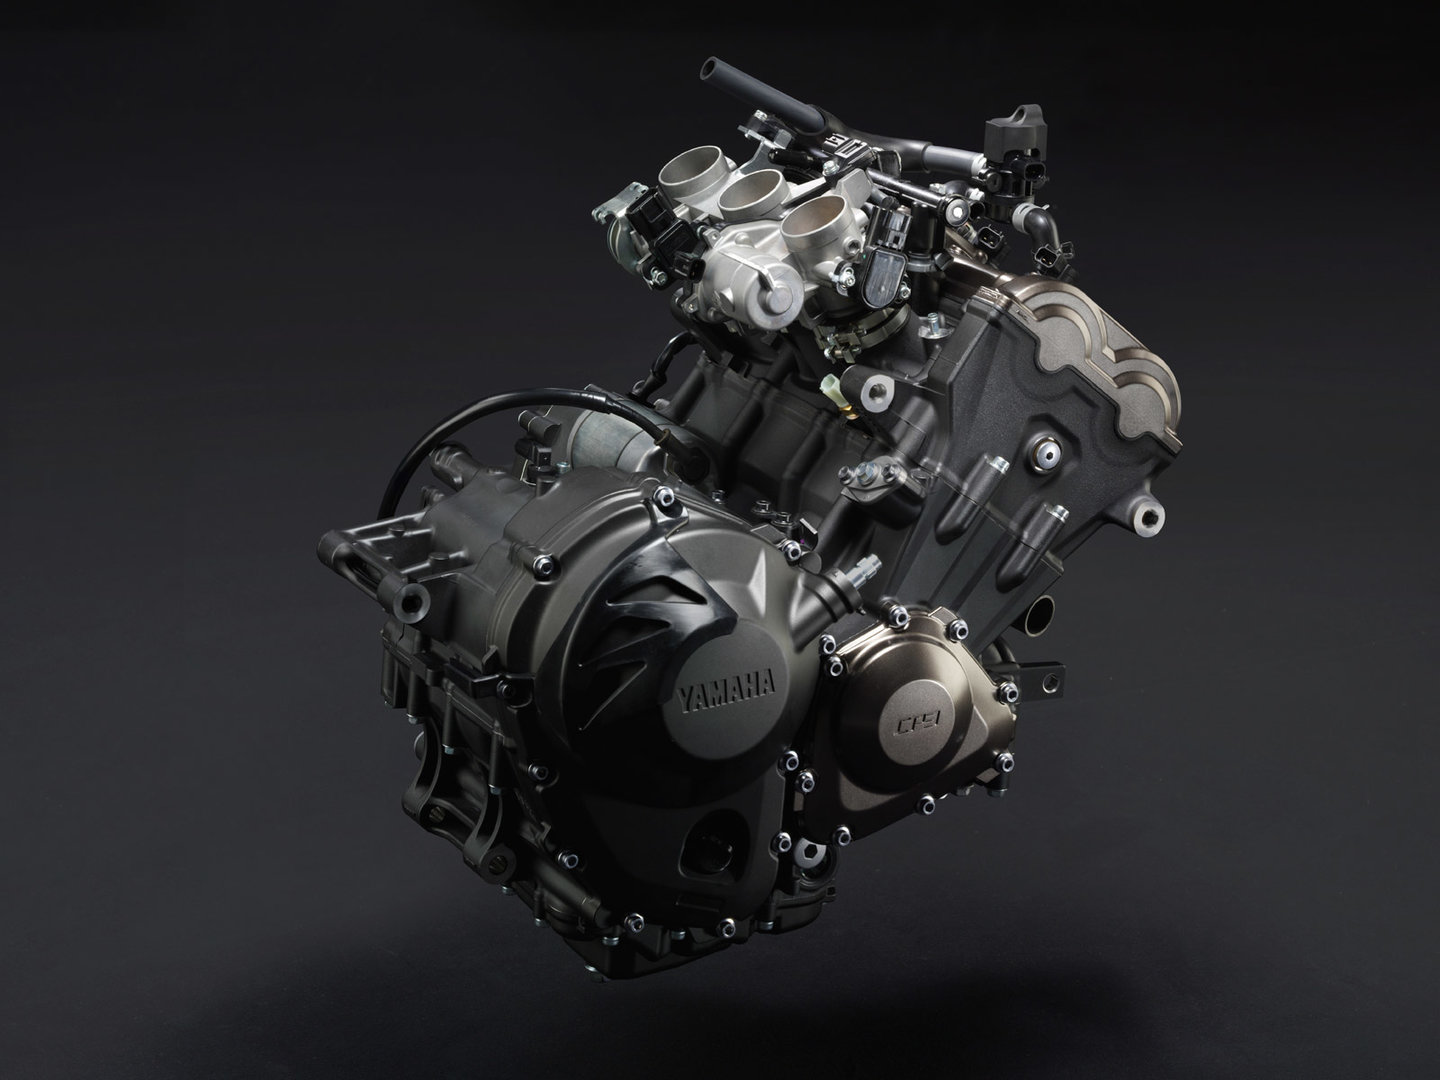 122-1306-05-o-2014-yamaha-fz-09-engine.jpg